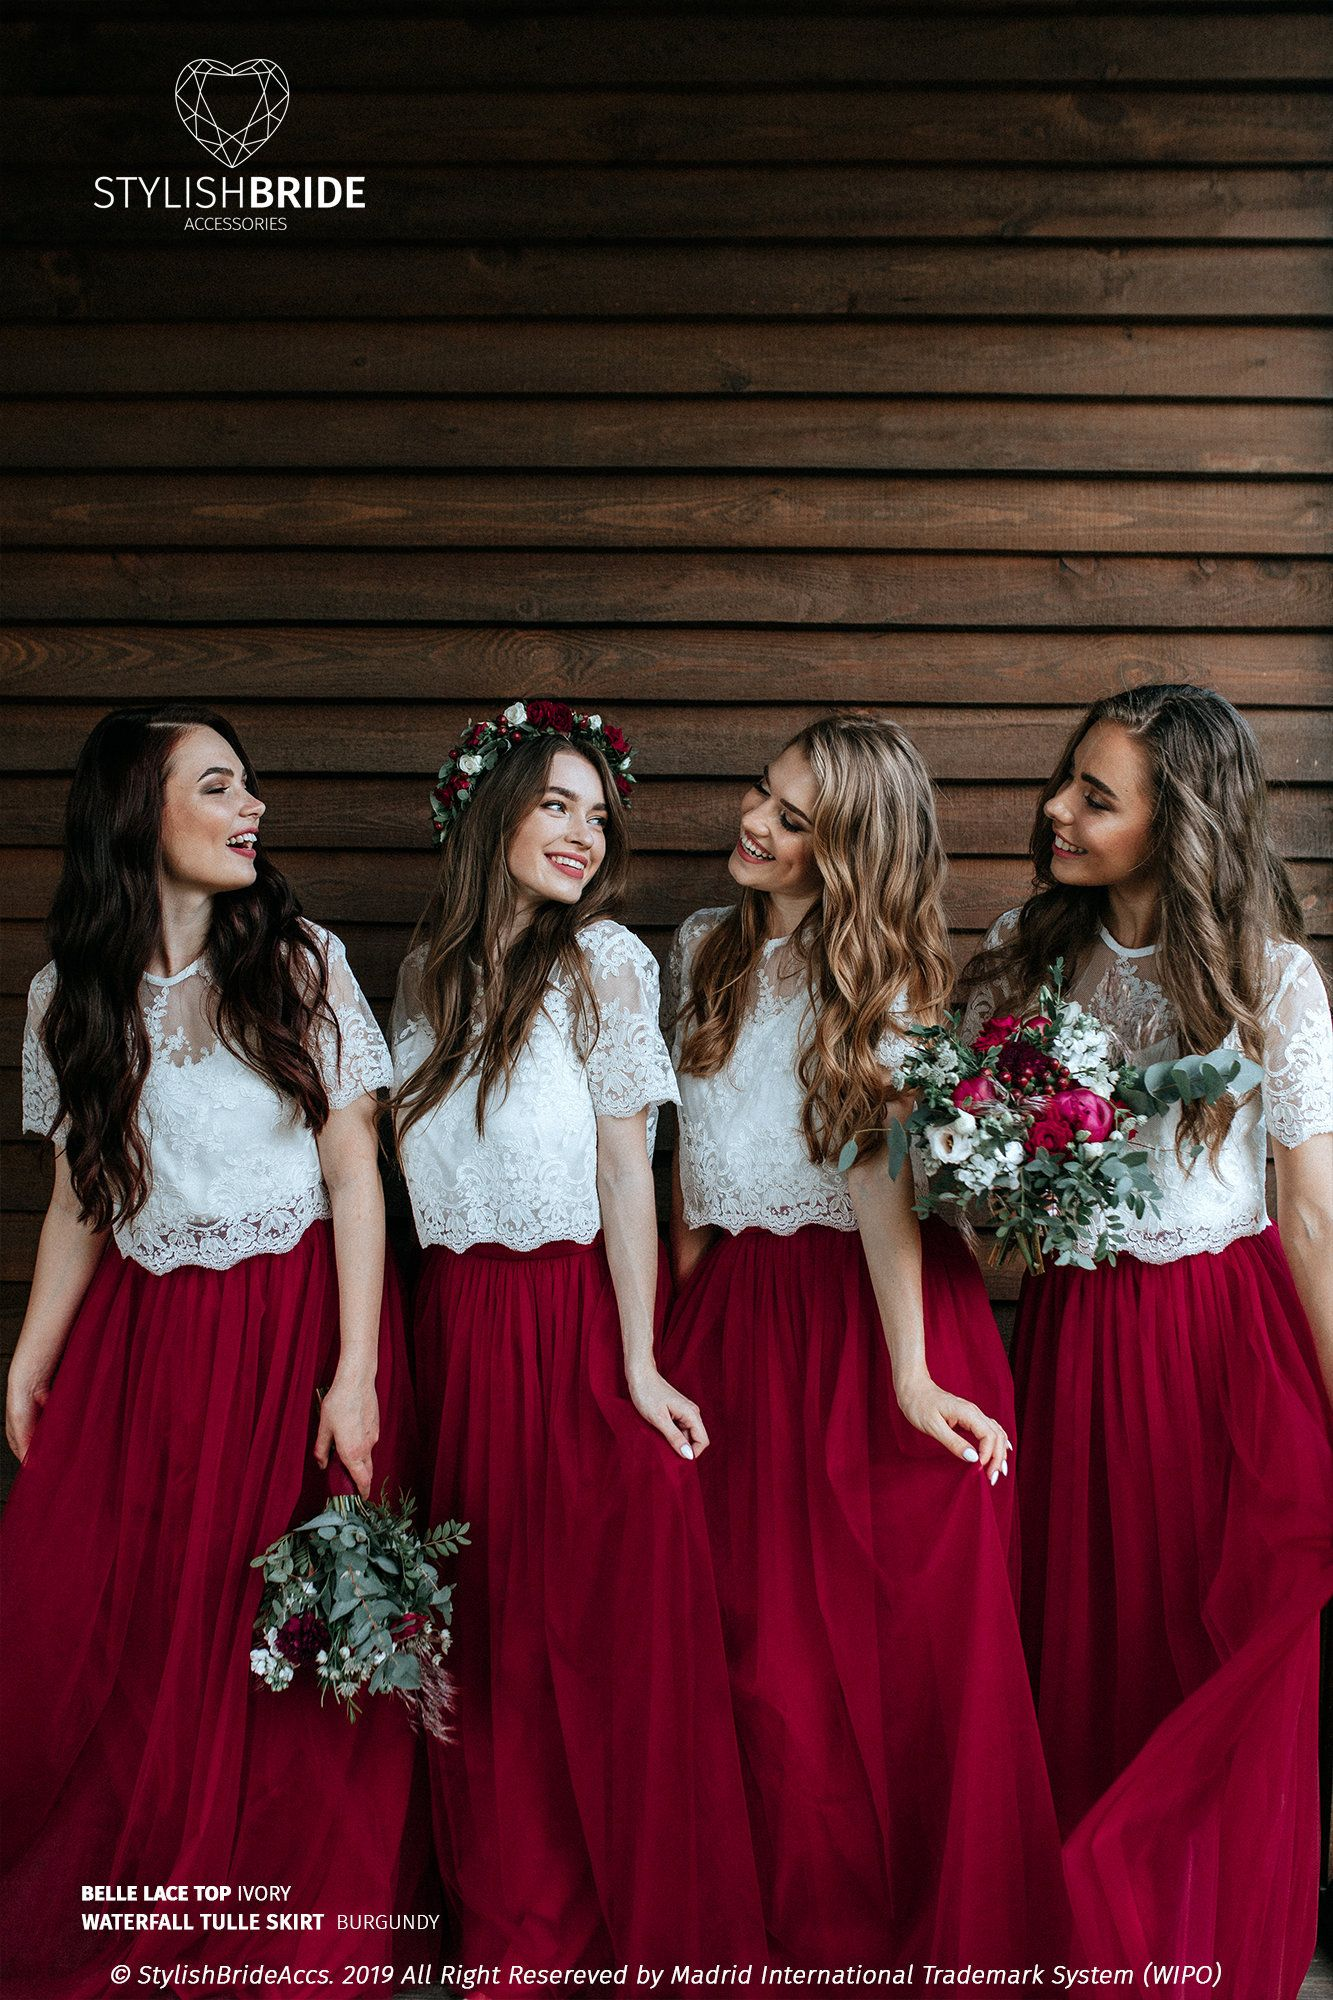 Burgundy Bridesmaids Separates Waterfall Tulle Skirt And Belle Lace Top With Silk Under Top Availabl Bridesmaid Skirts Bridesmaid Separates Bridesmaid Dresses